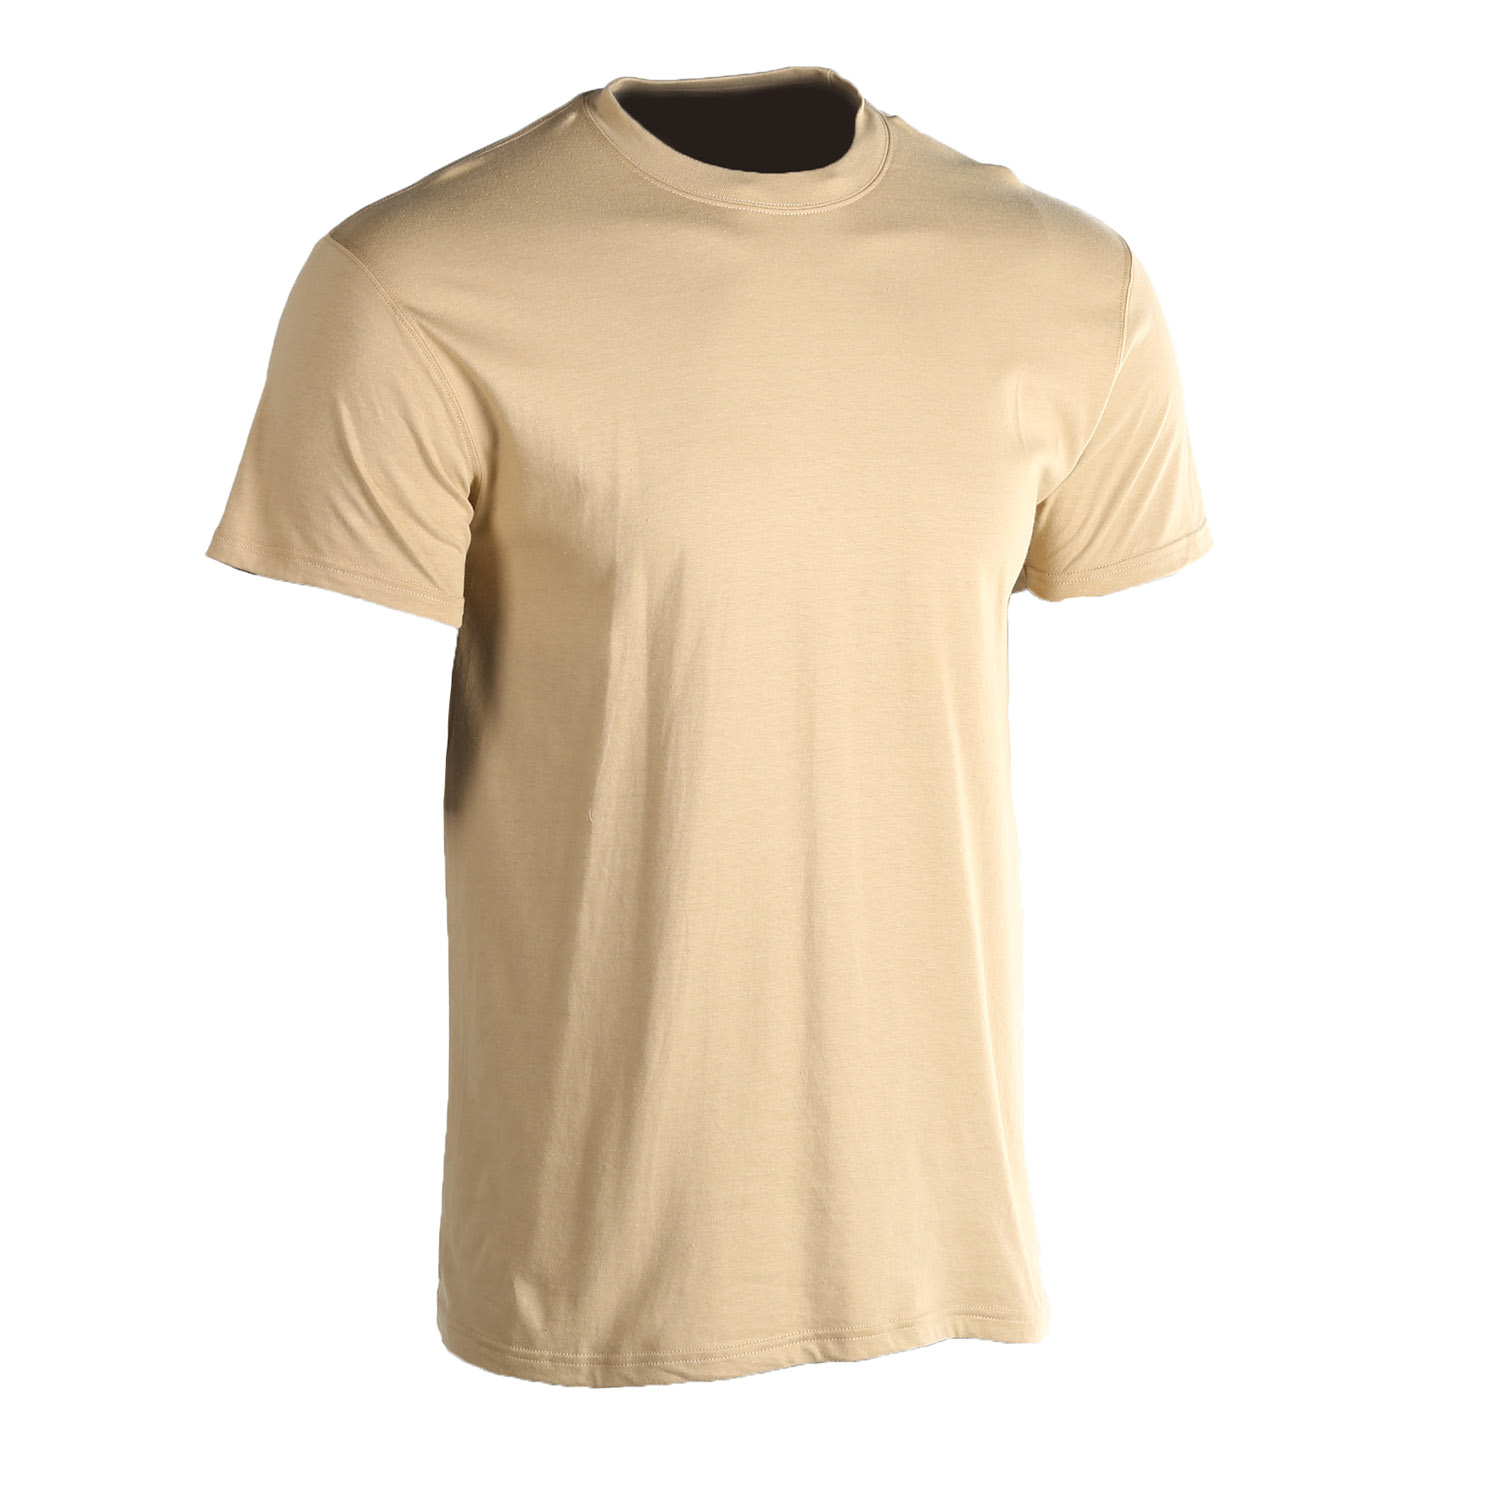 5.11 Tactical Utili T-Shirts (3 Pack)